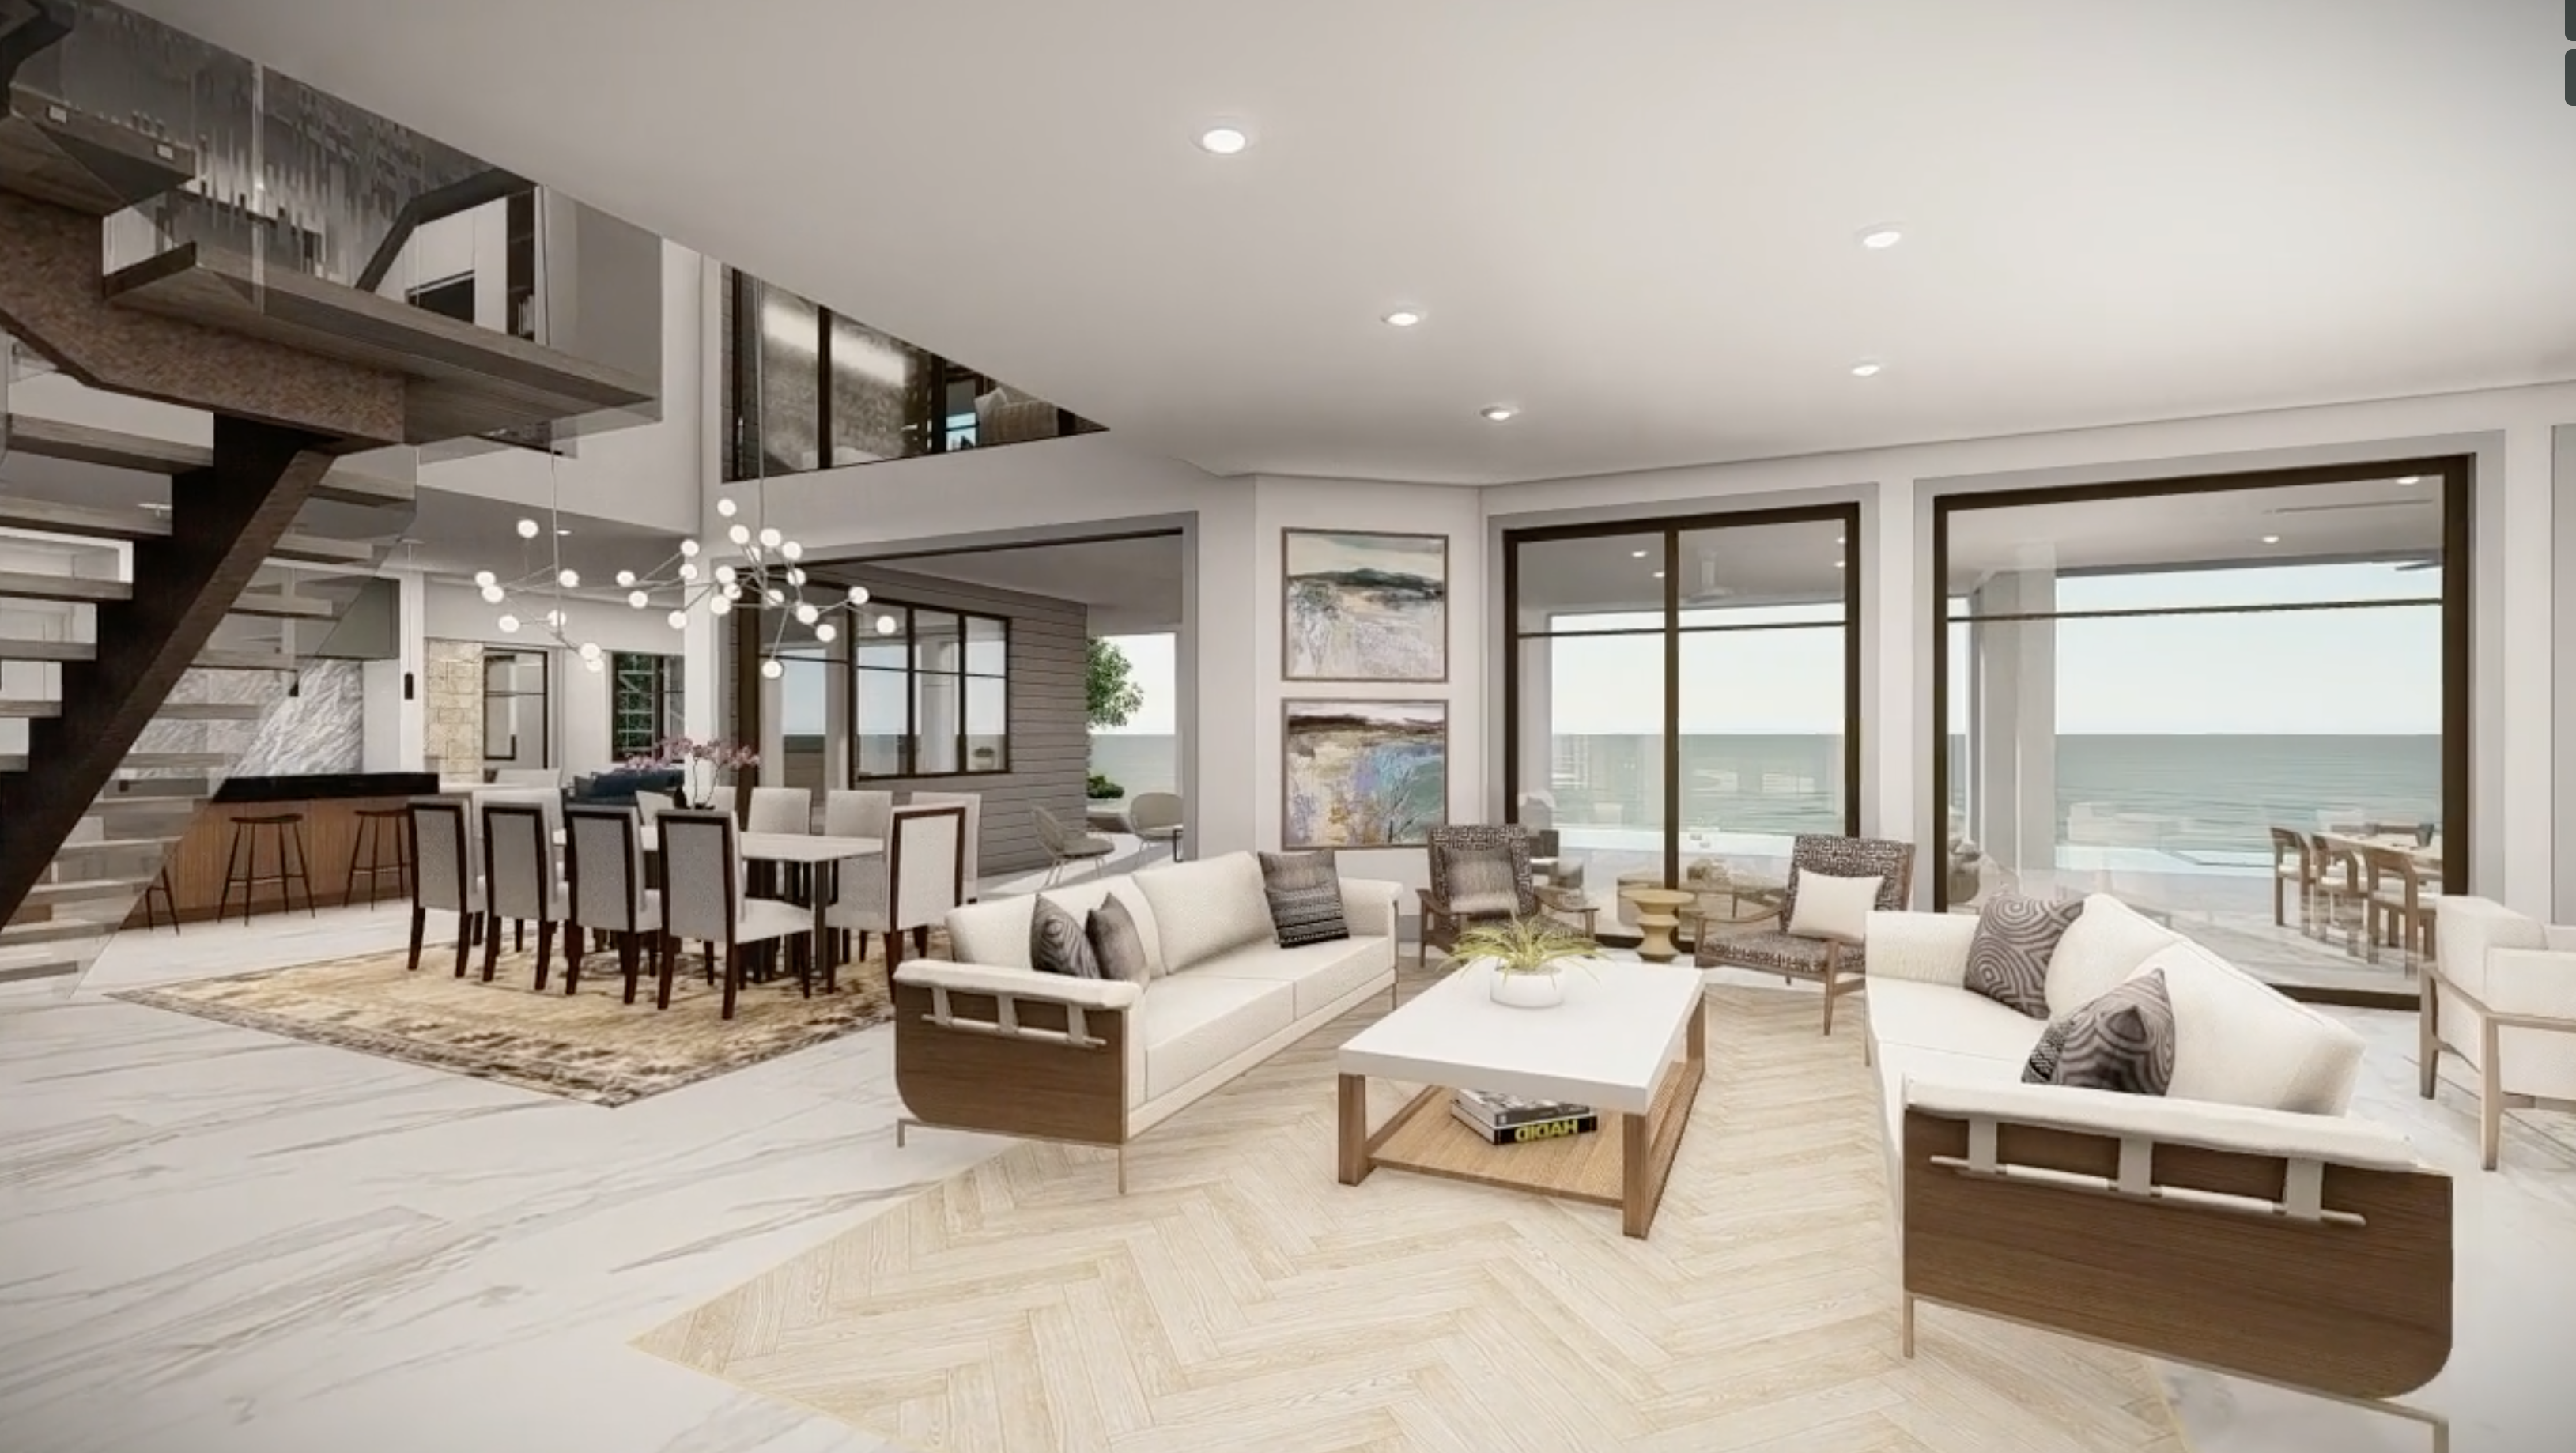 3d rendering of home interior - phil kean design group